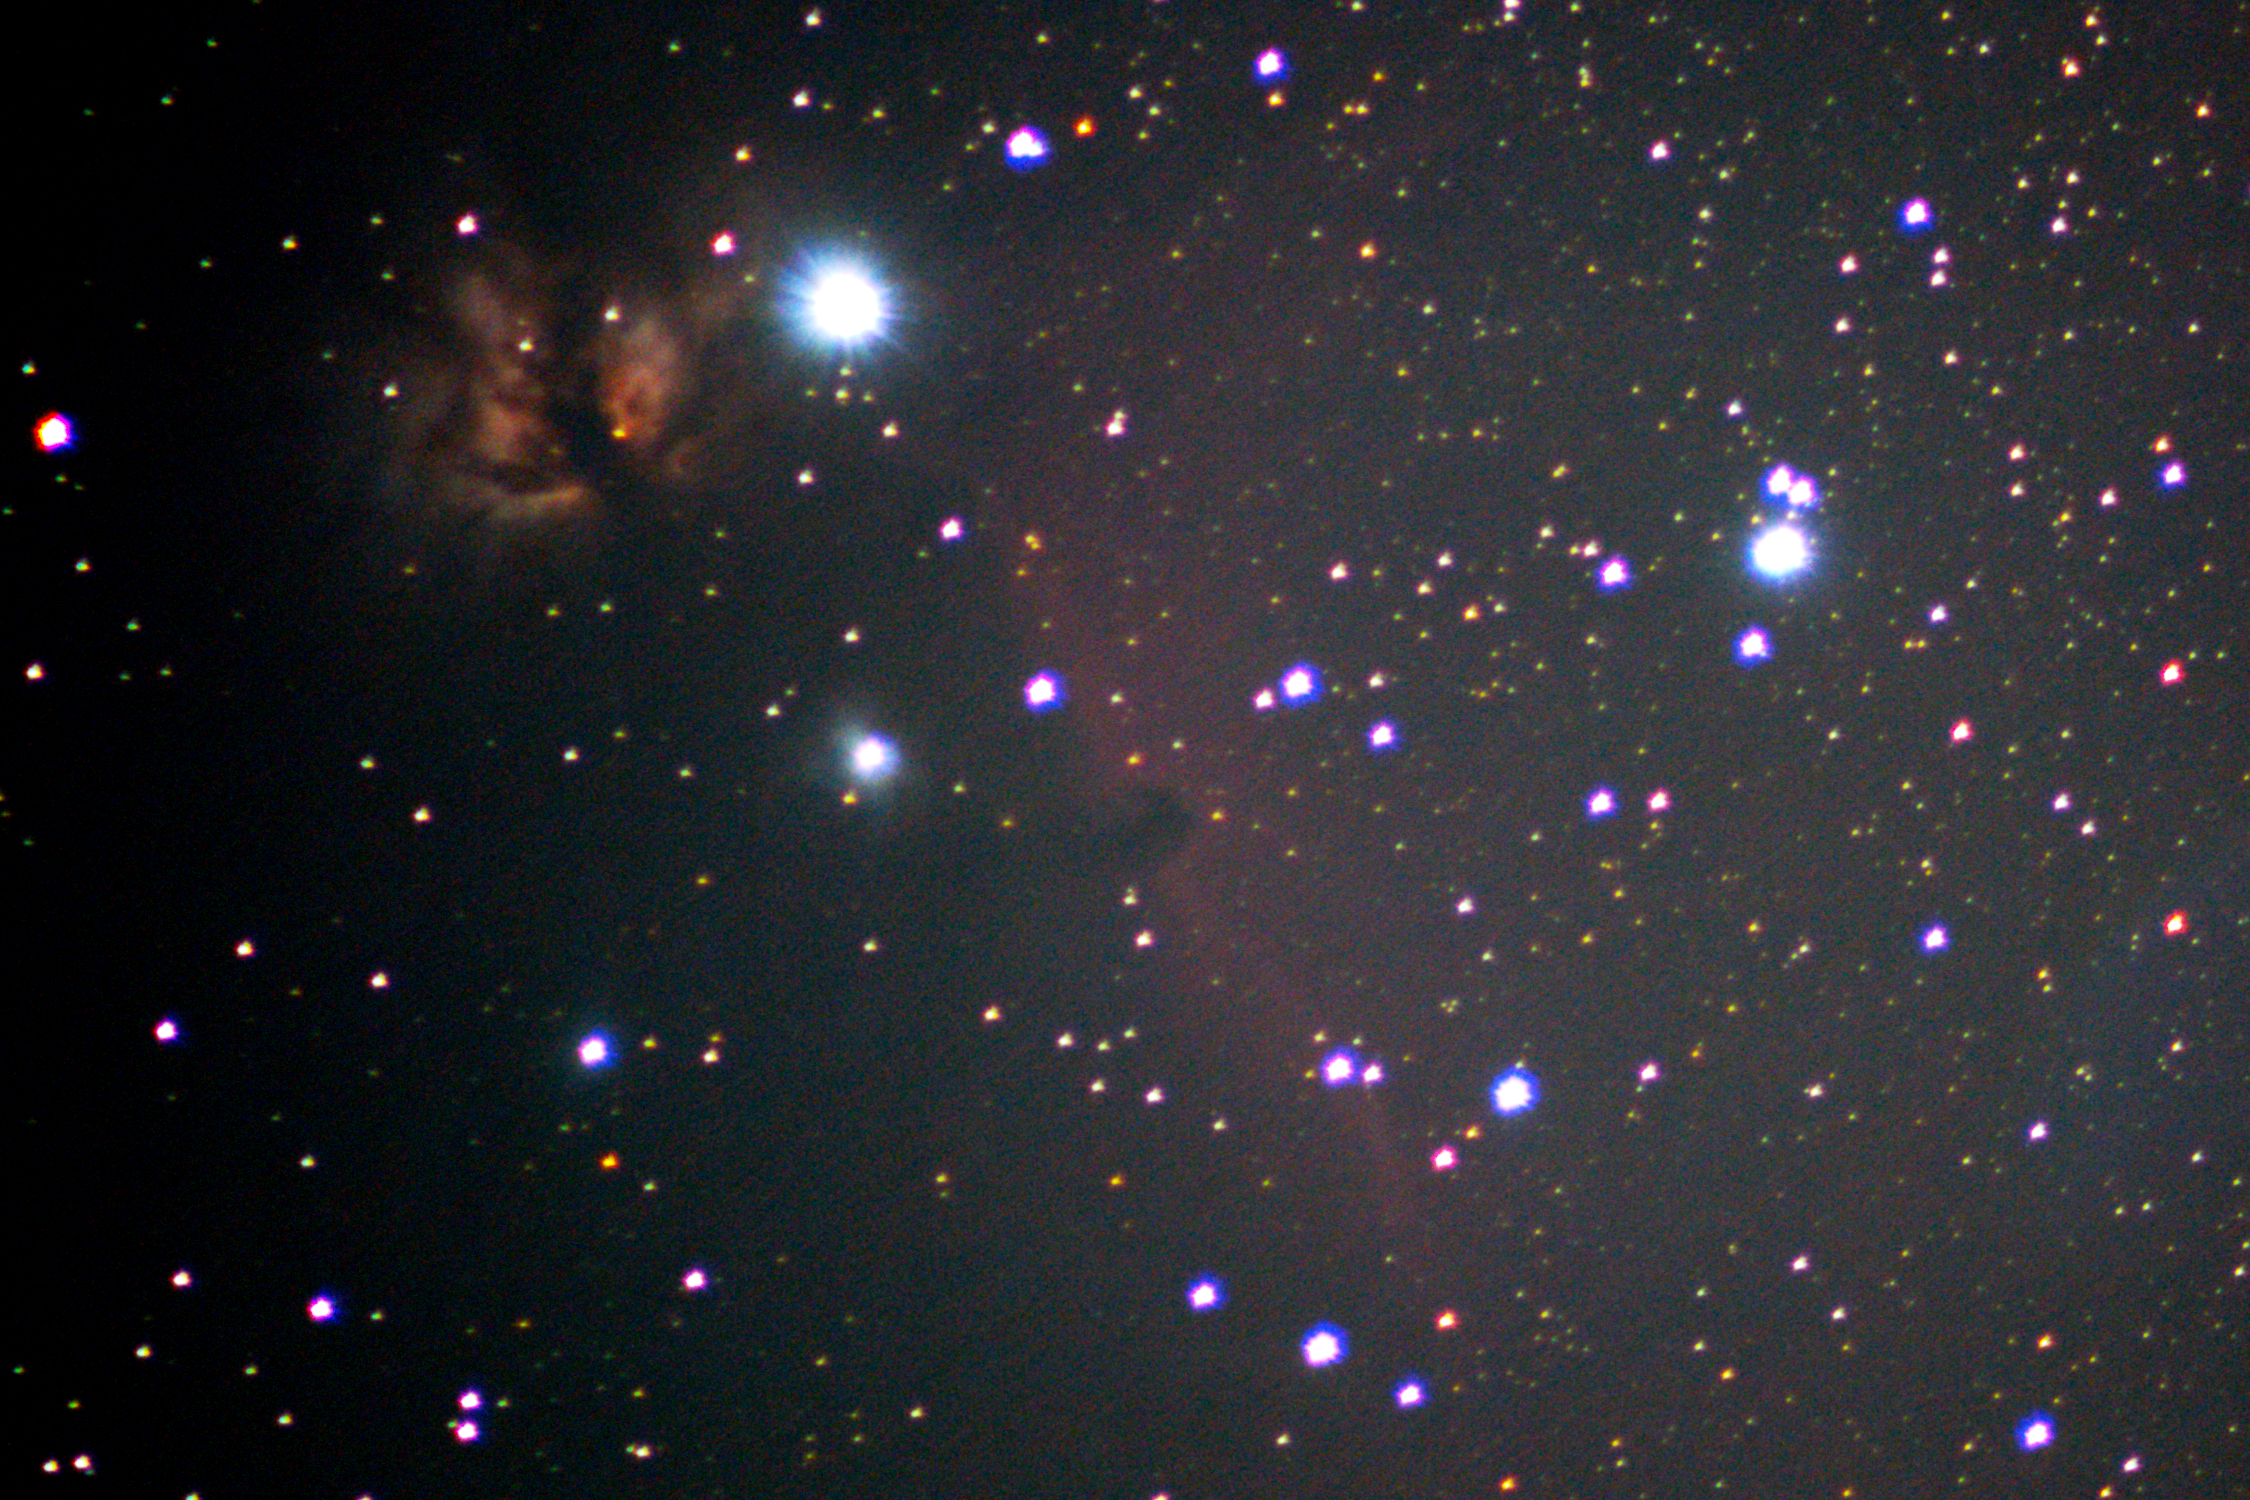 Horsehead Nebula & Flame Nebula-picture copyrighted by Sam Walsh